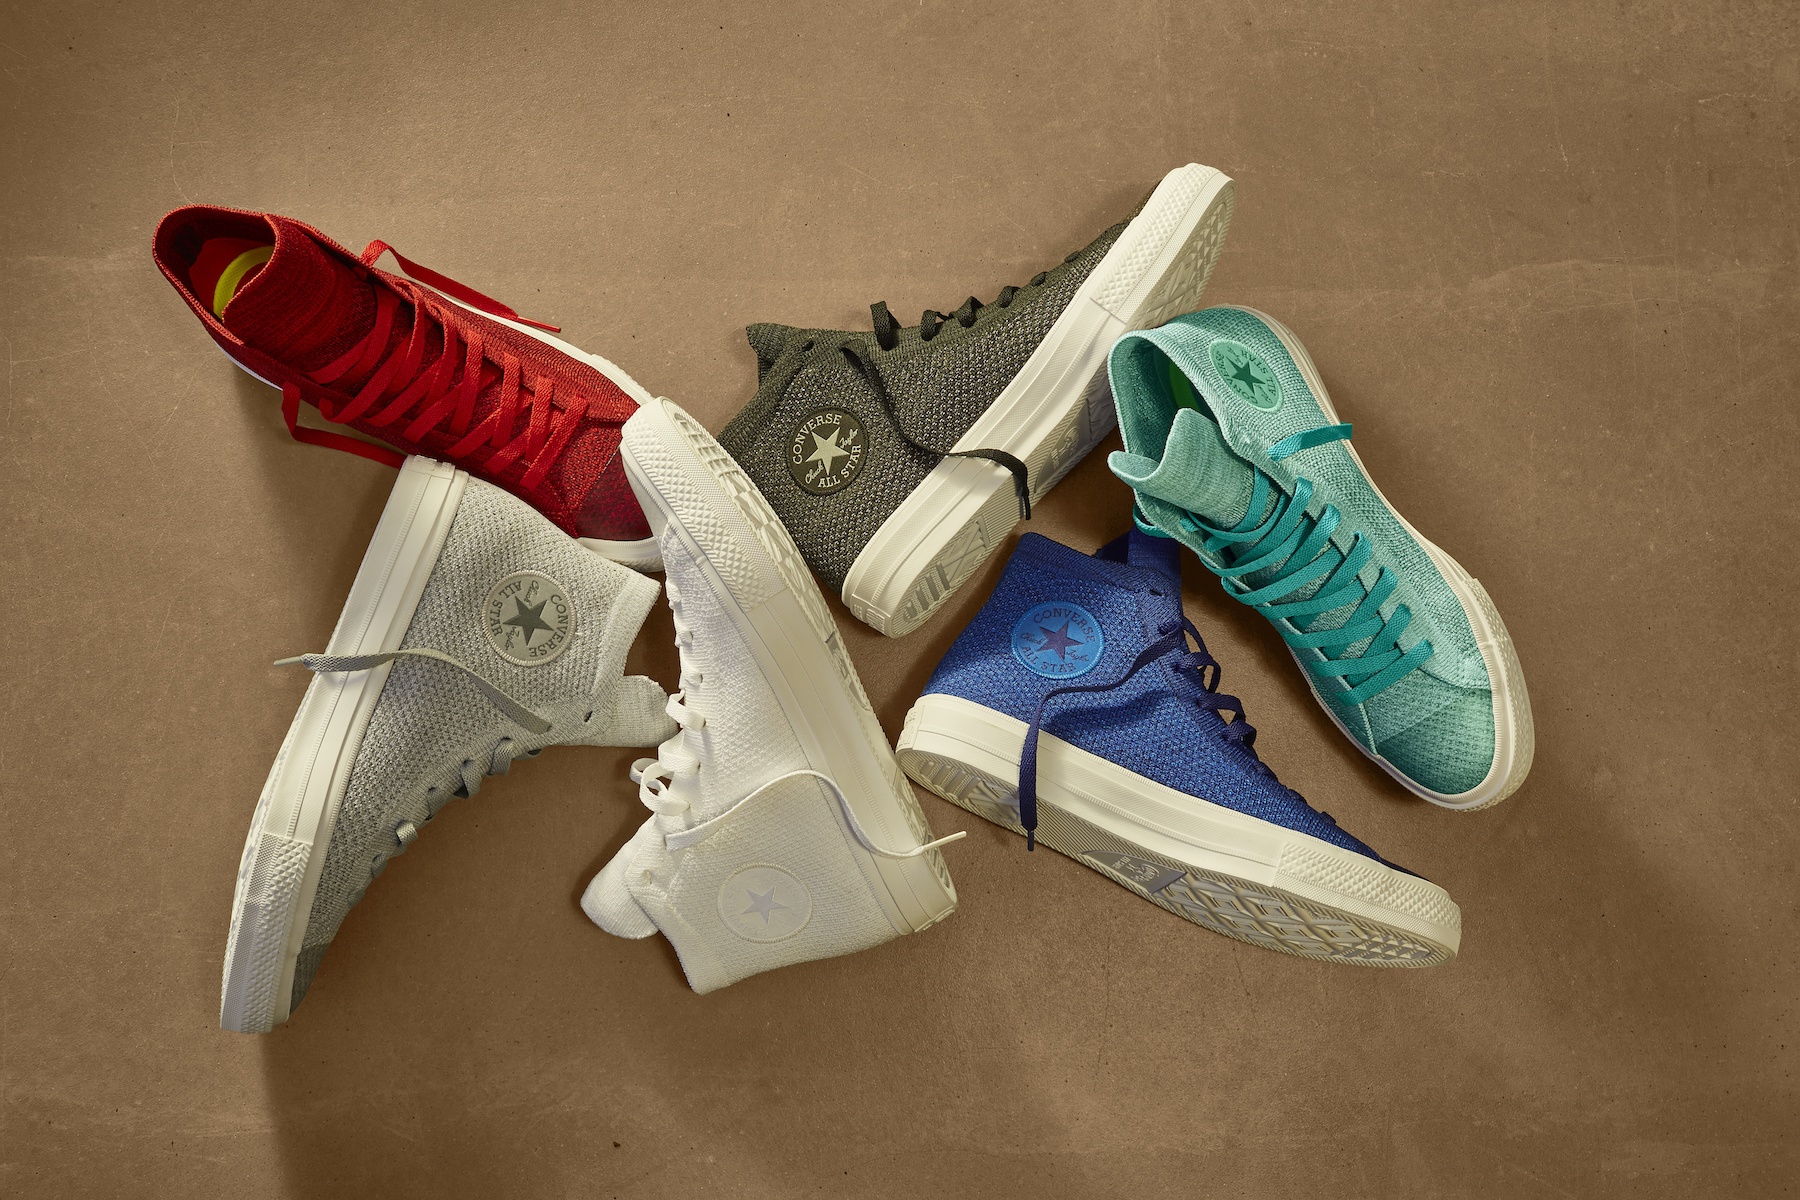 suelovesnyc_susan_fengler_blog_sneaker_converse_chuck_taylor_all_stars_x_nike_flyknit_colors